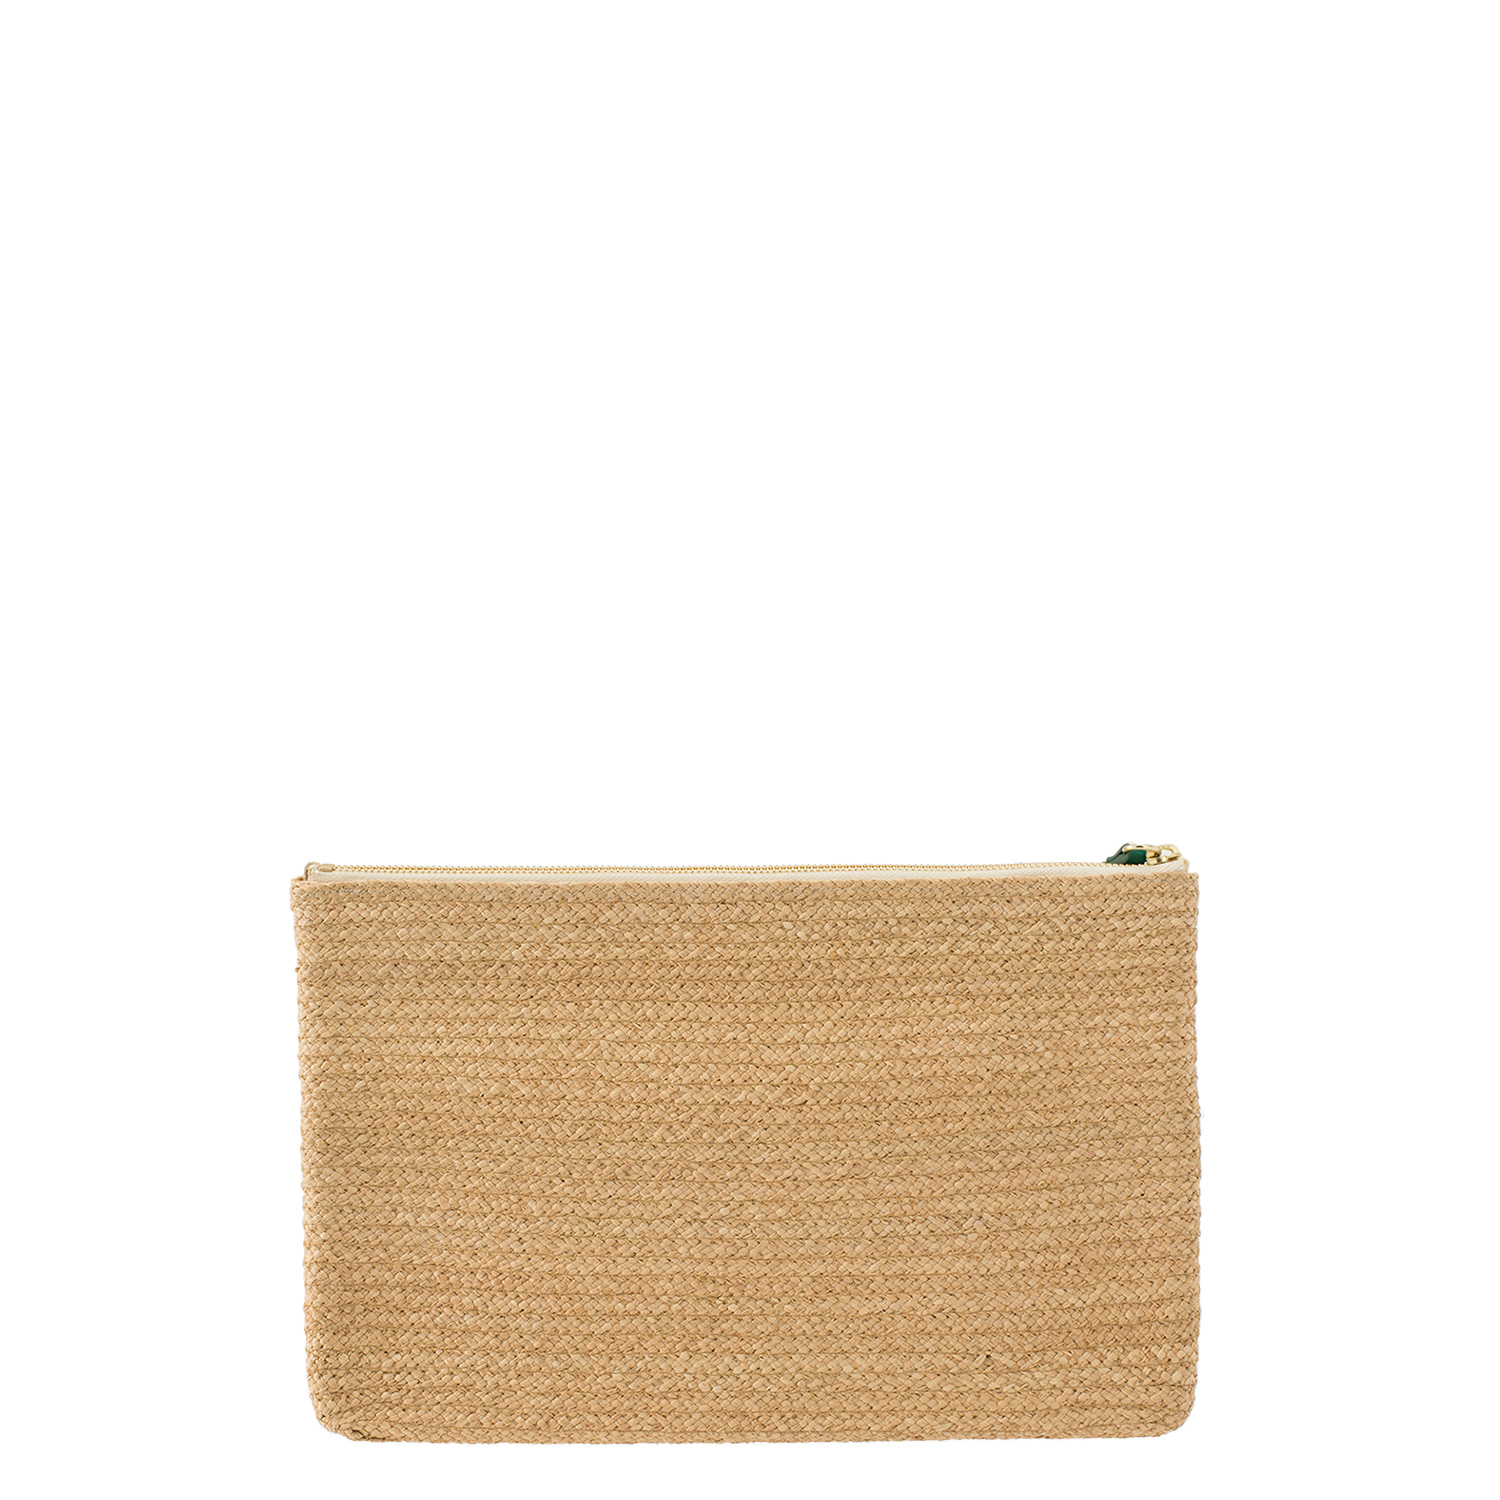 MISS BLOOM CLUTCH